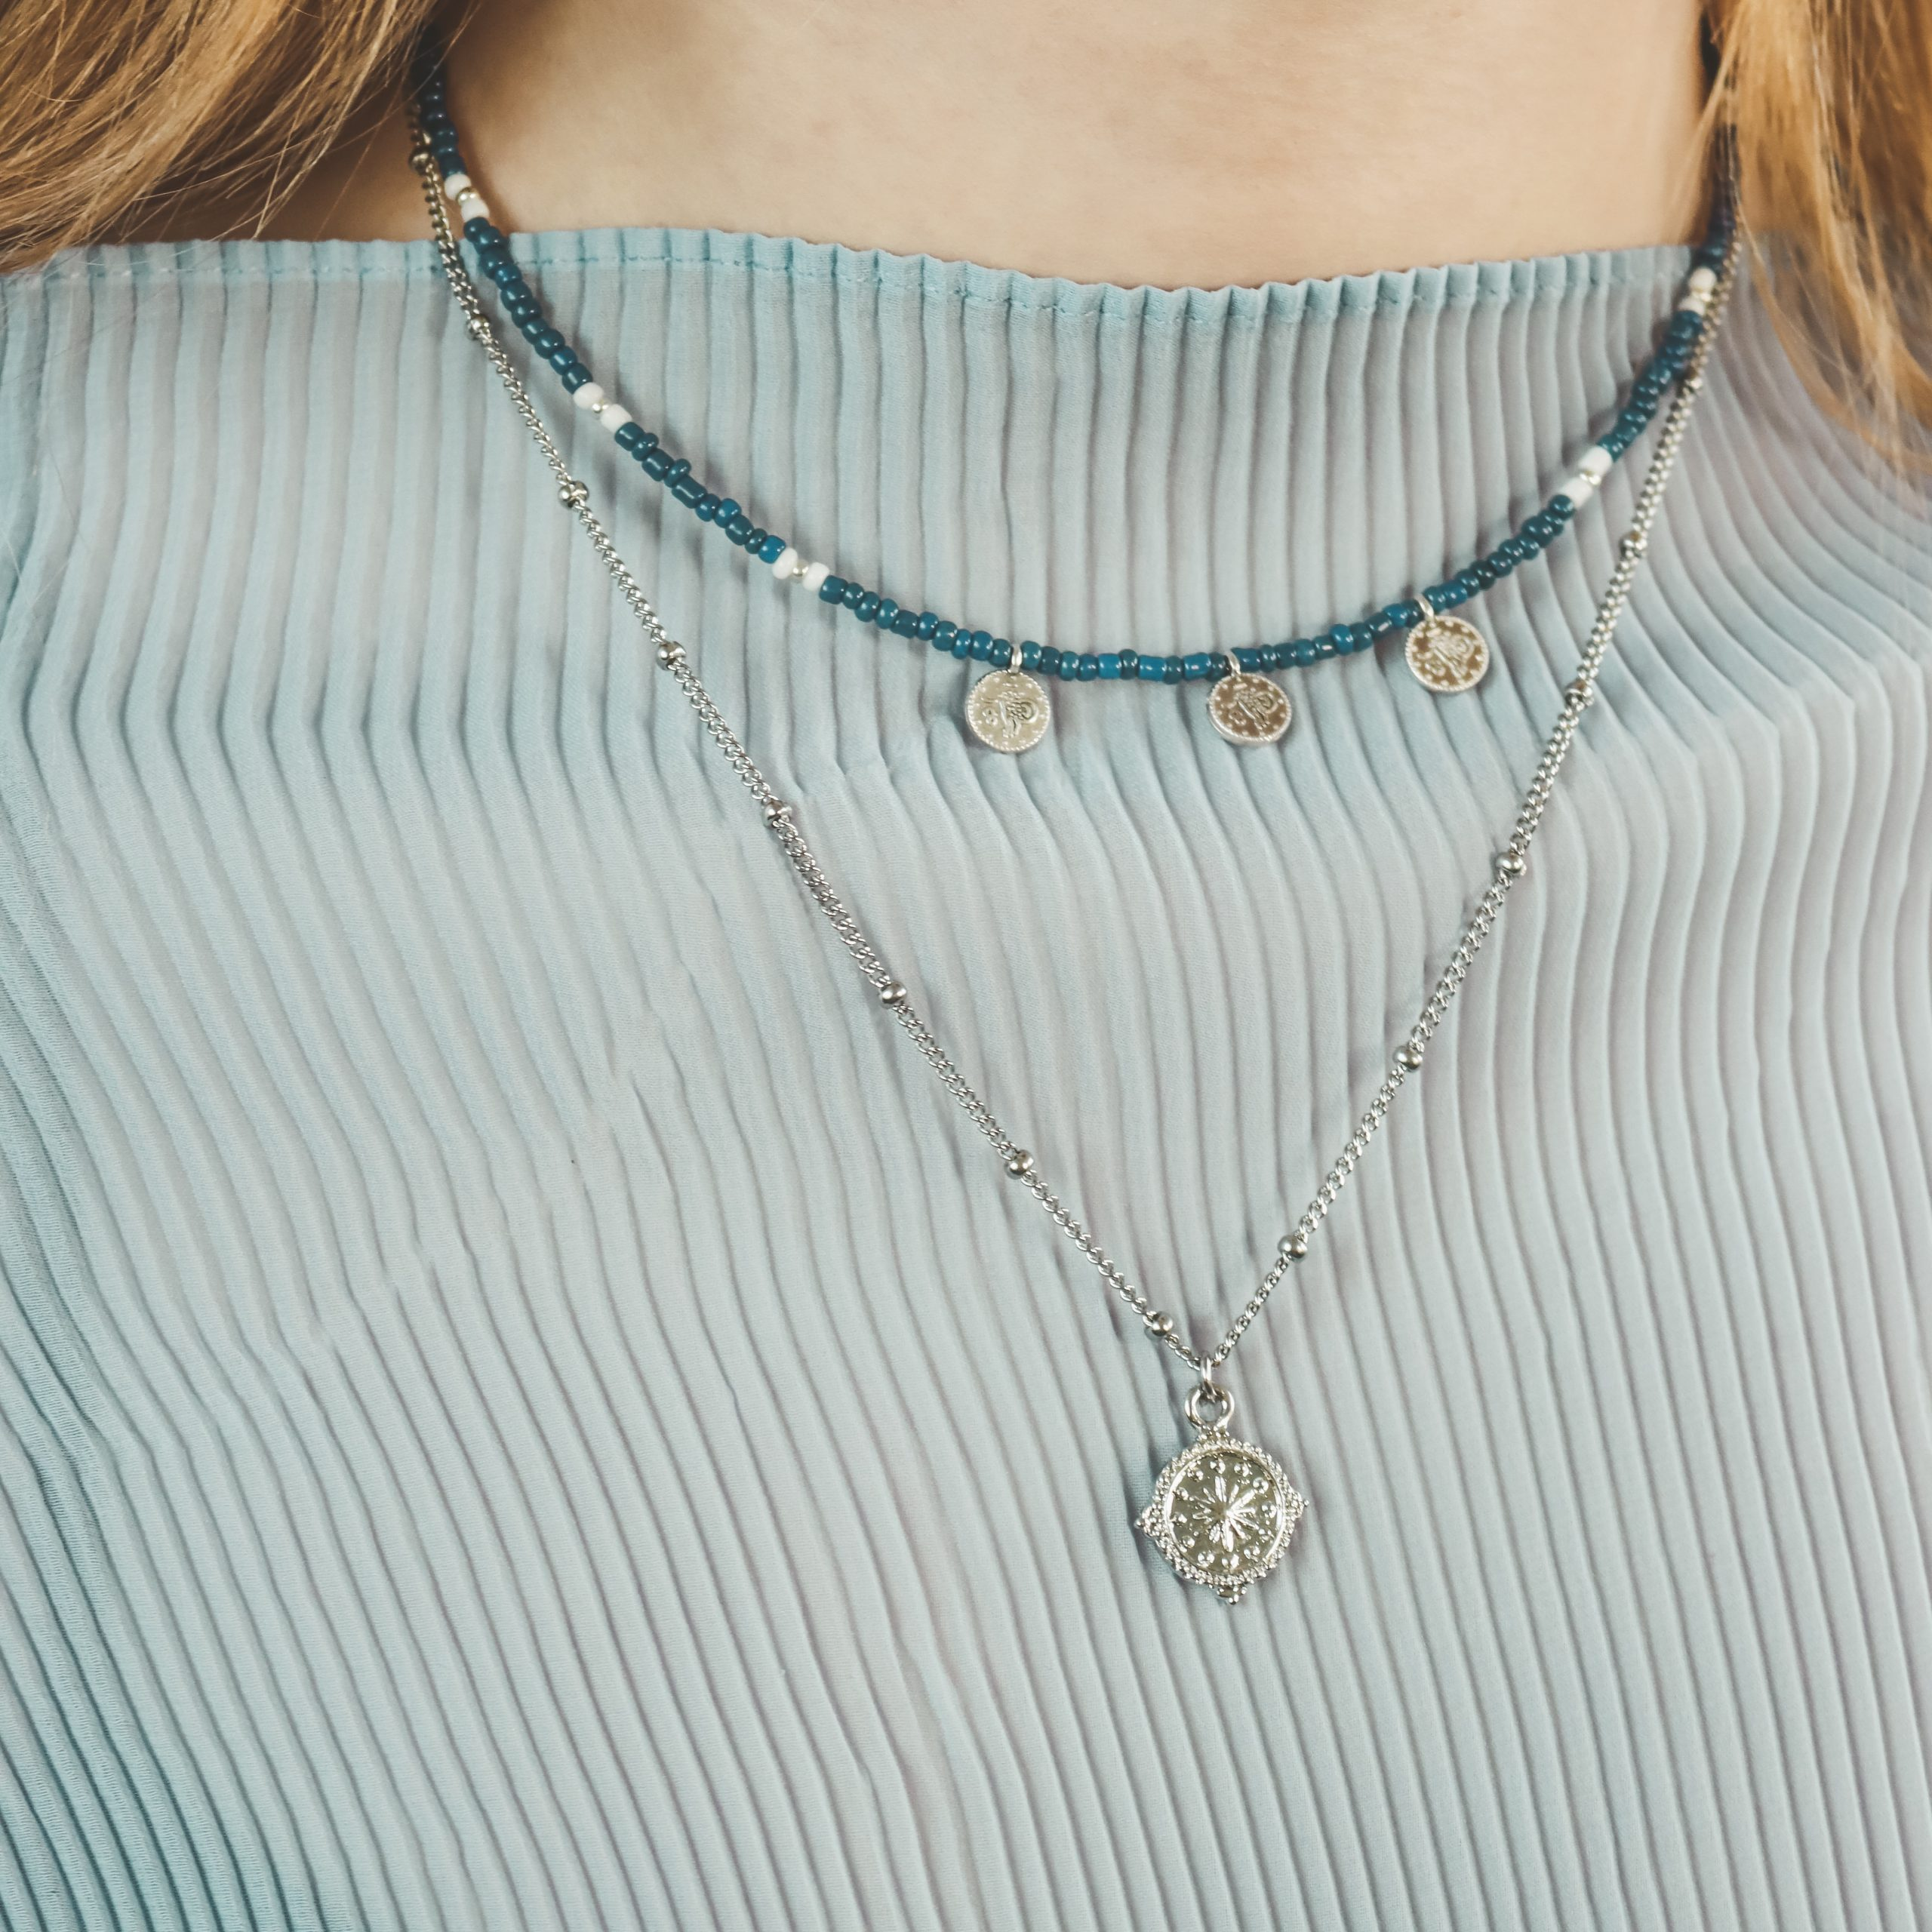 3 silver coins necklace